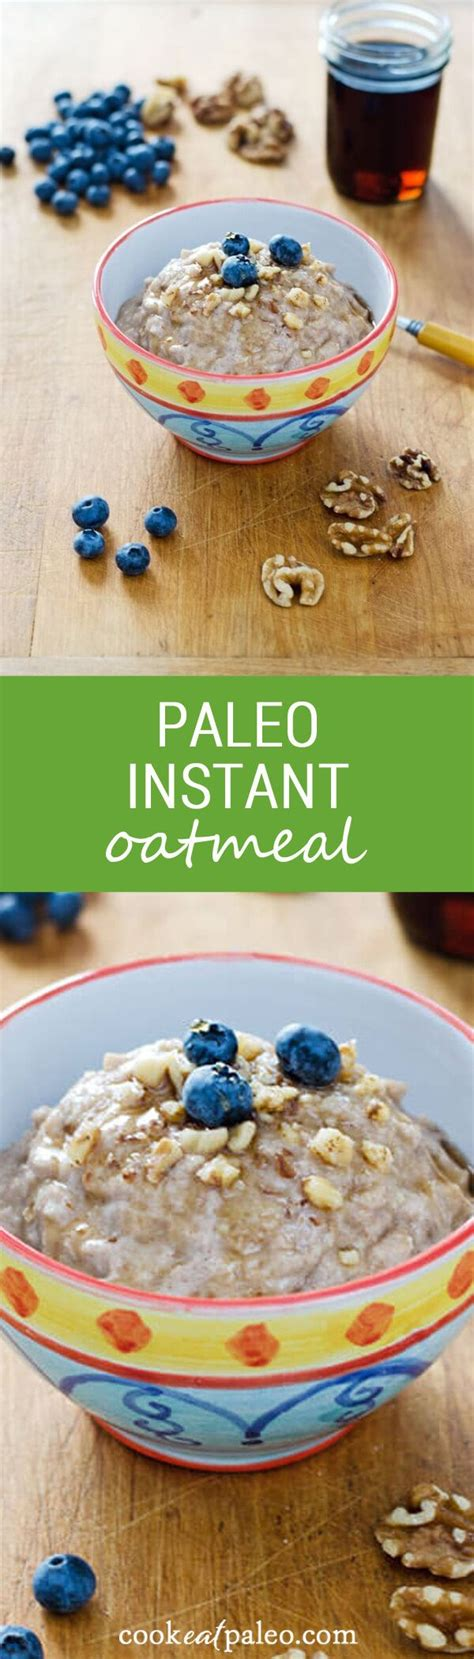 the ã å i my instant potã paleo 100 instant oatmeal recipes on